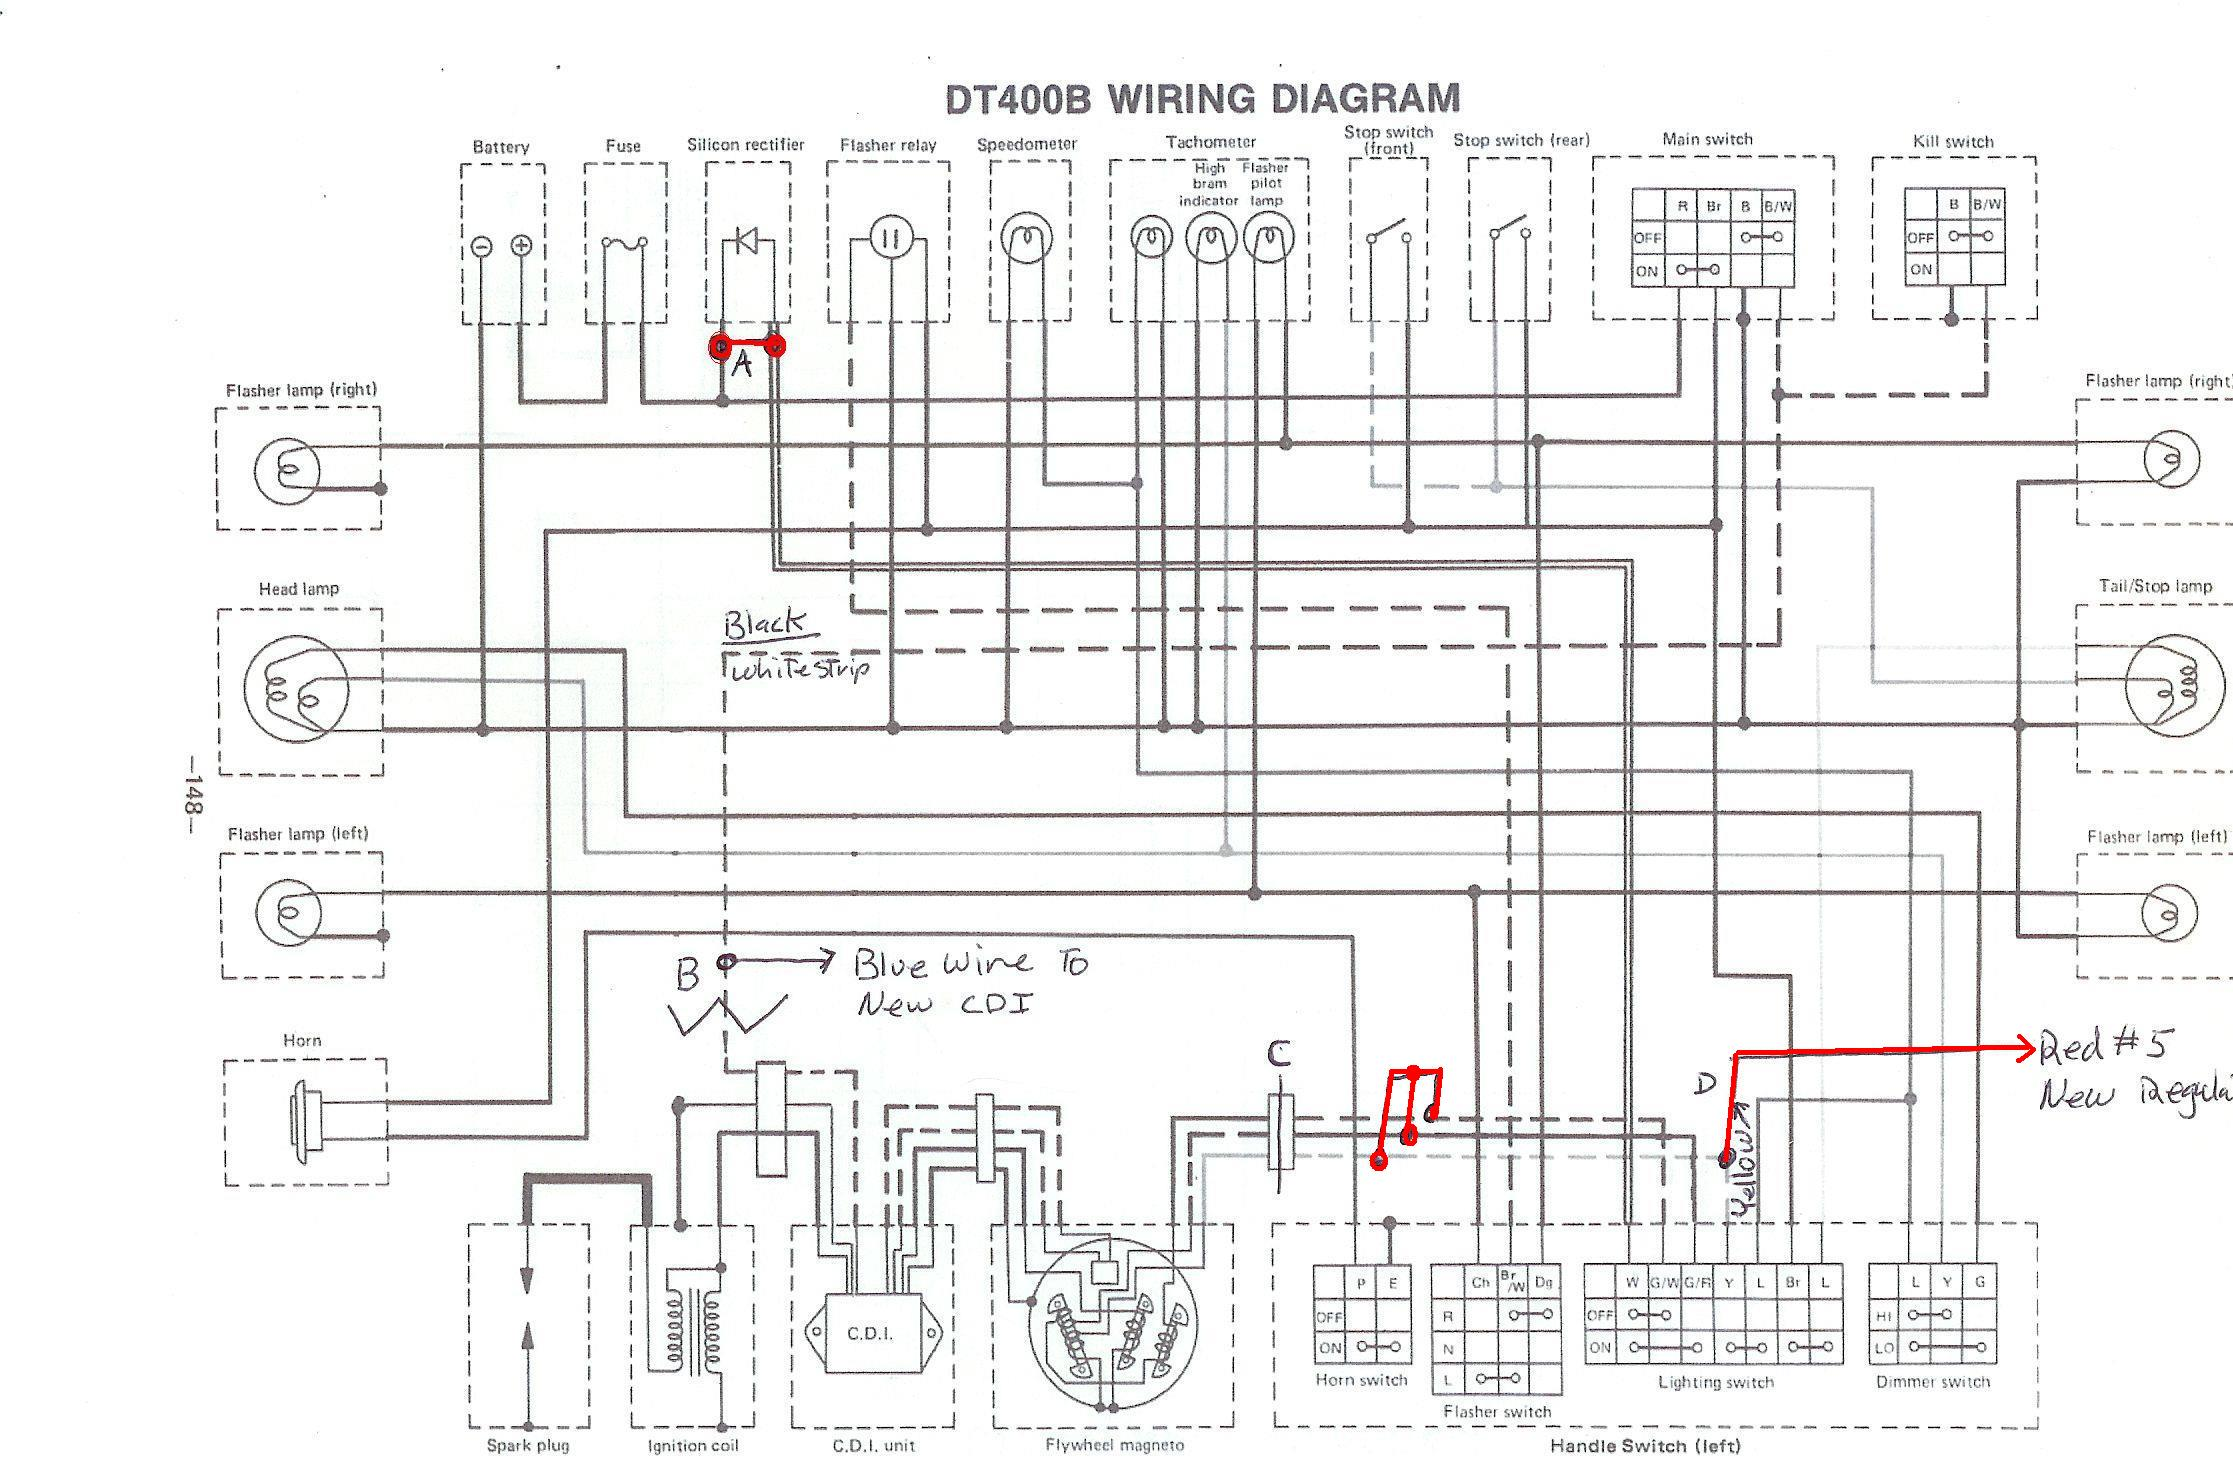 yamaha dt360 enduro motorcycle wiring schematics diagram wire center u2022 rh botarena co 1974 Yamaha DT360 Review Yamaha DT250